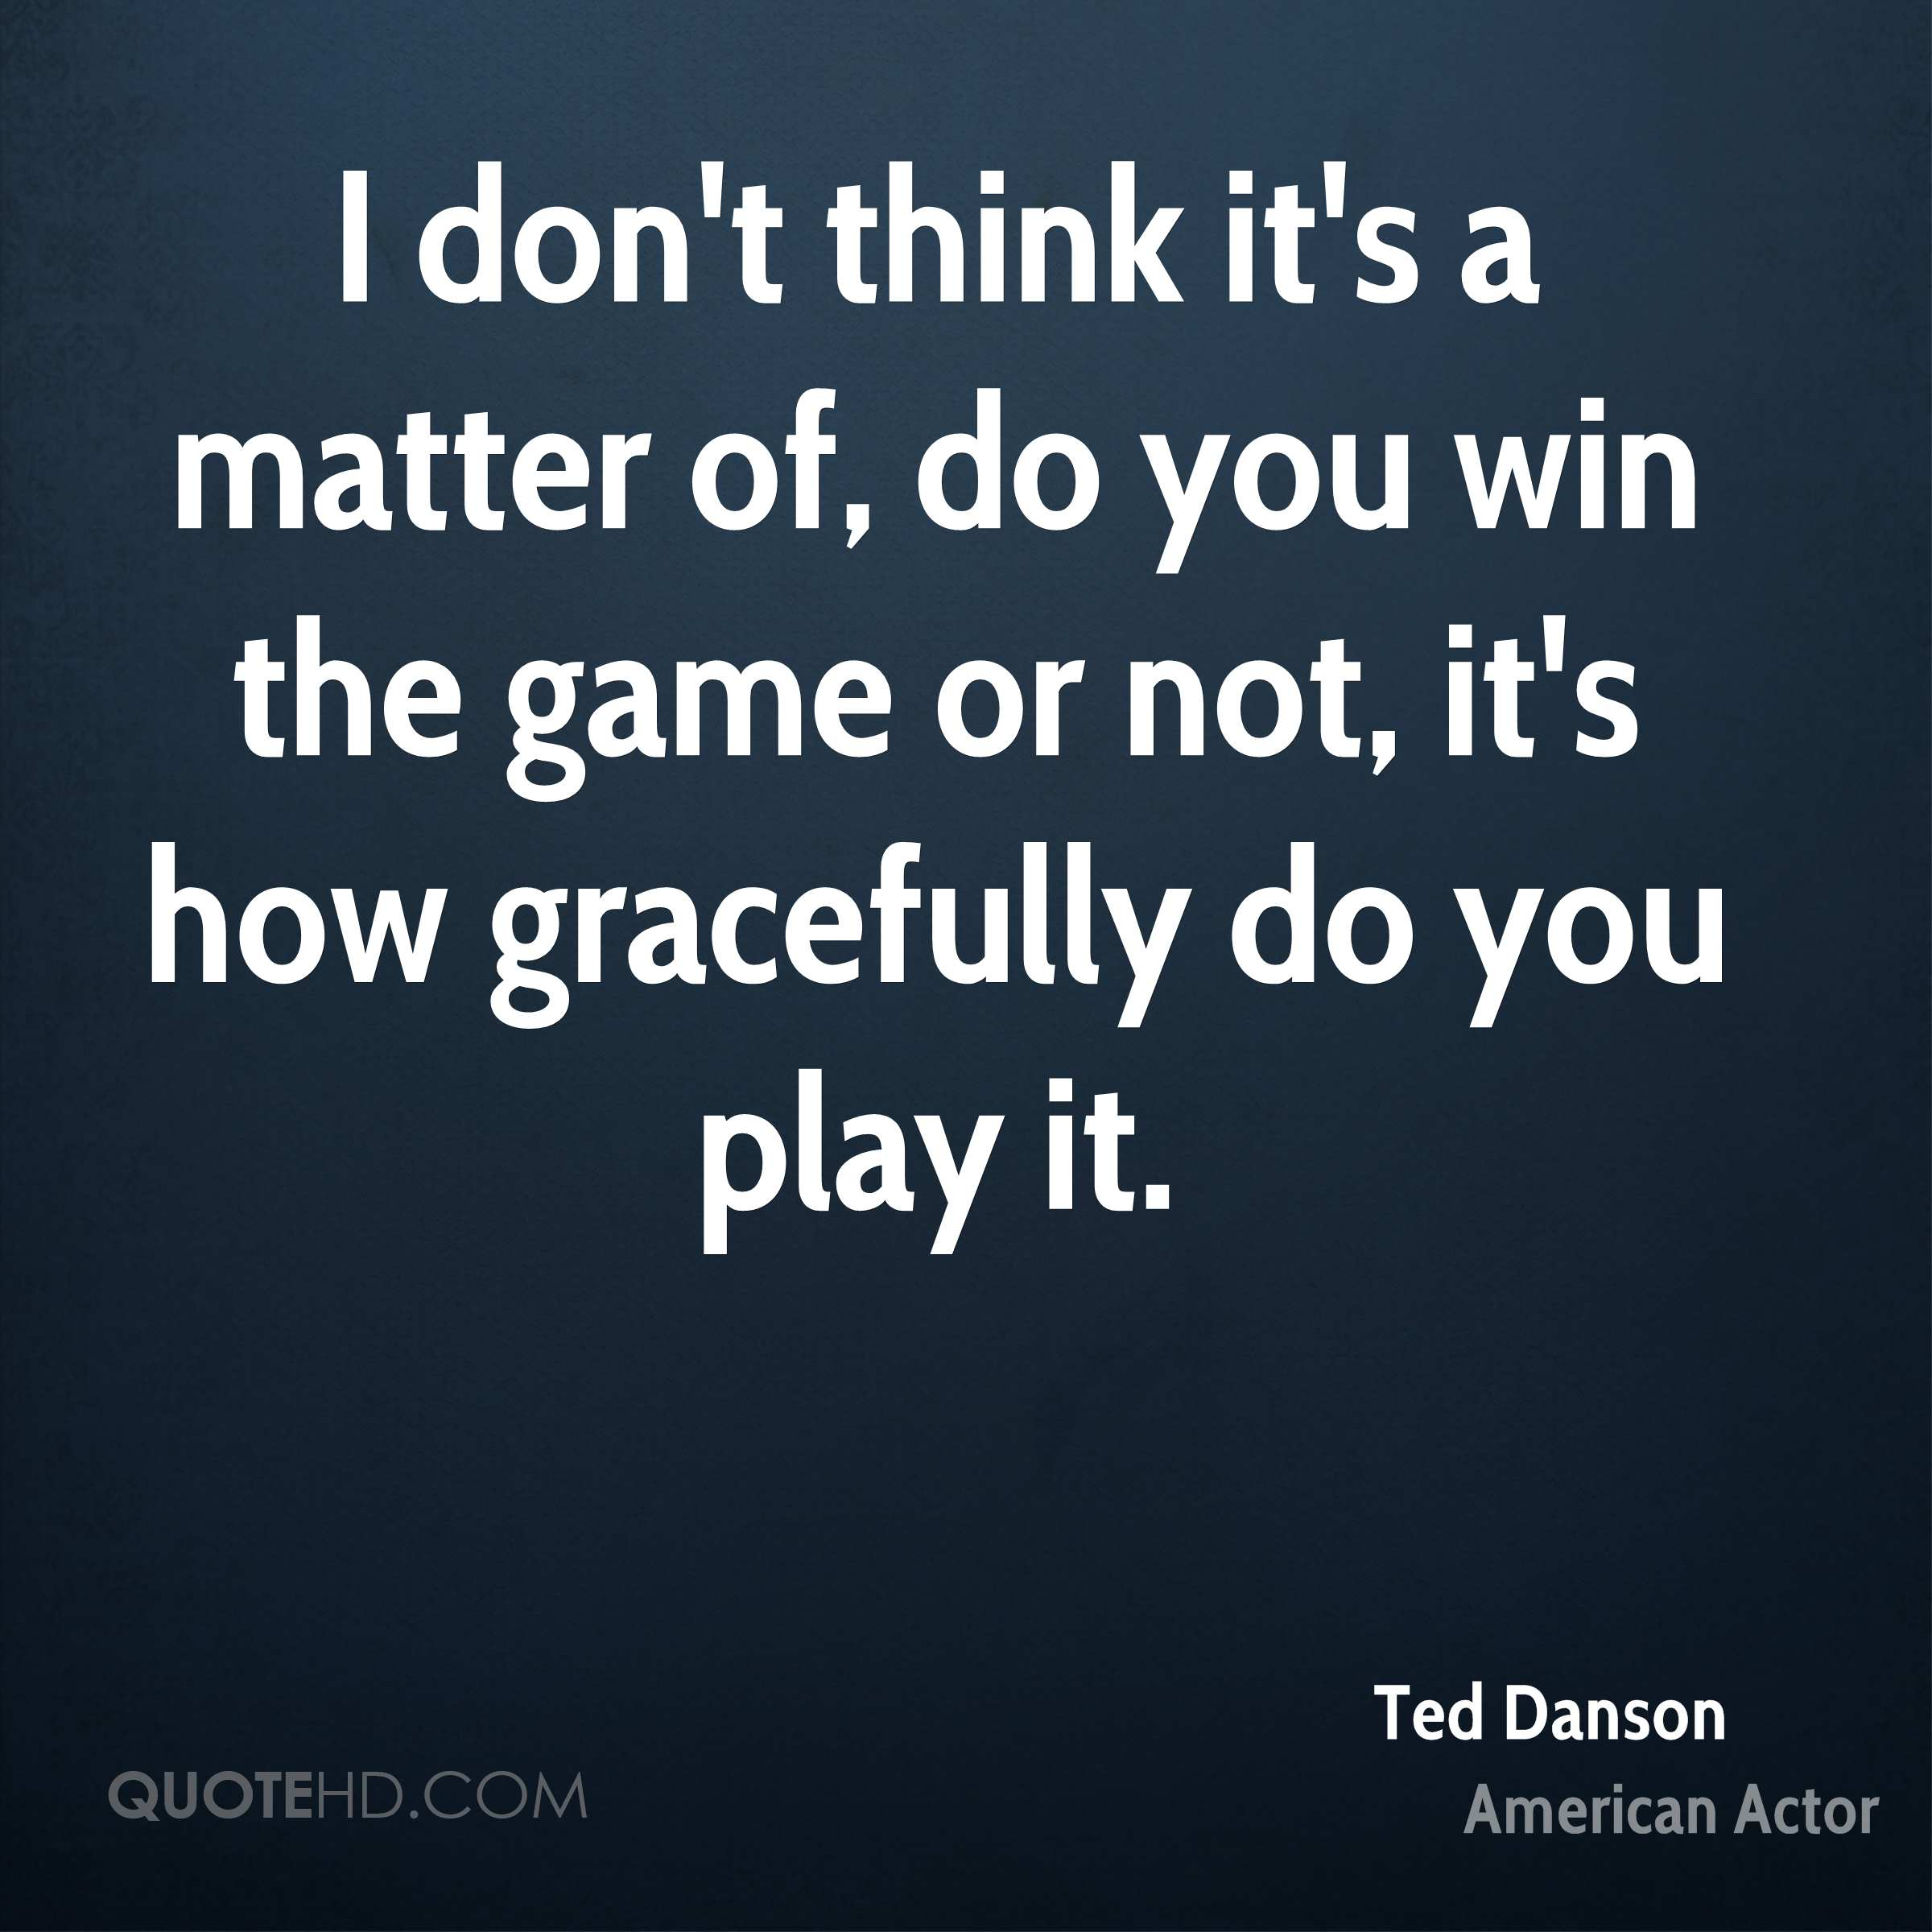 I don't think it's a matter of, do you win the game or not, it's how gracefully do you play it.